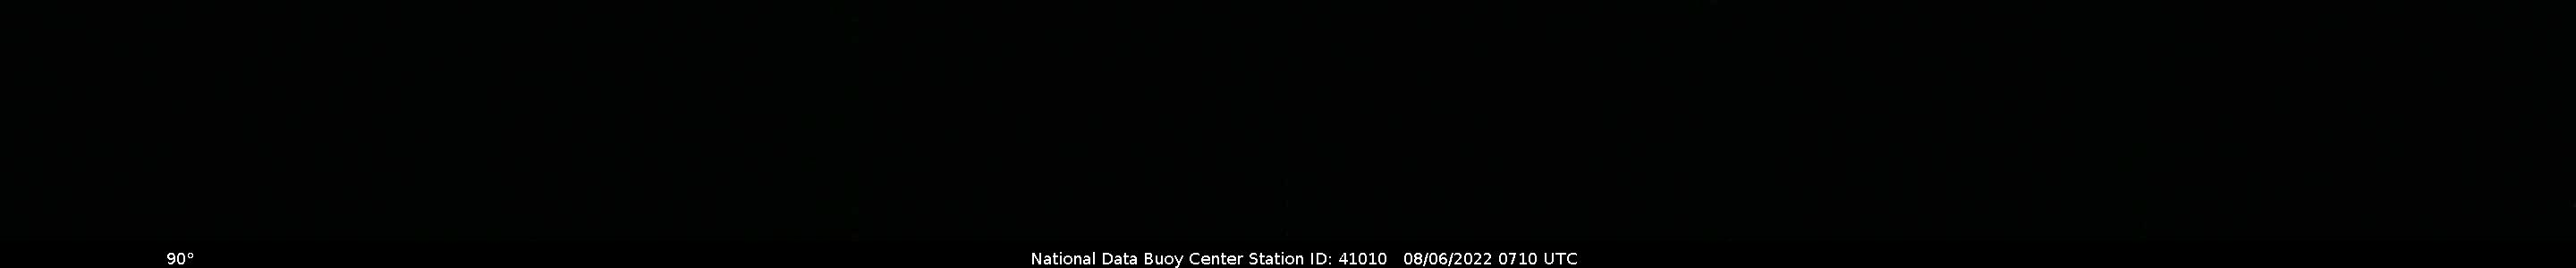 CANAVERAL EAST - 120NM East of Cape Canaveral